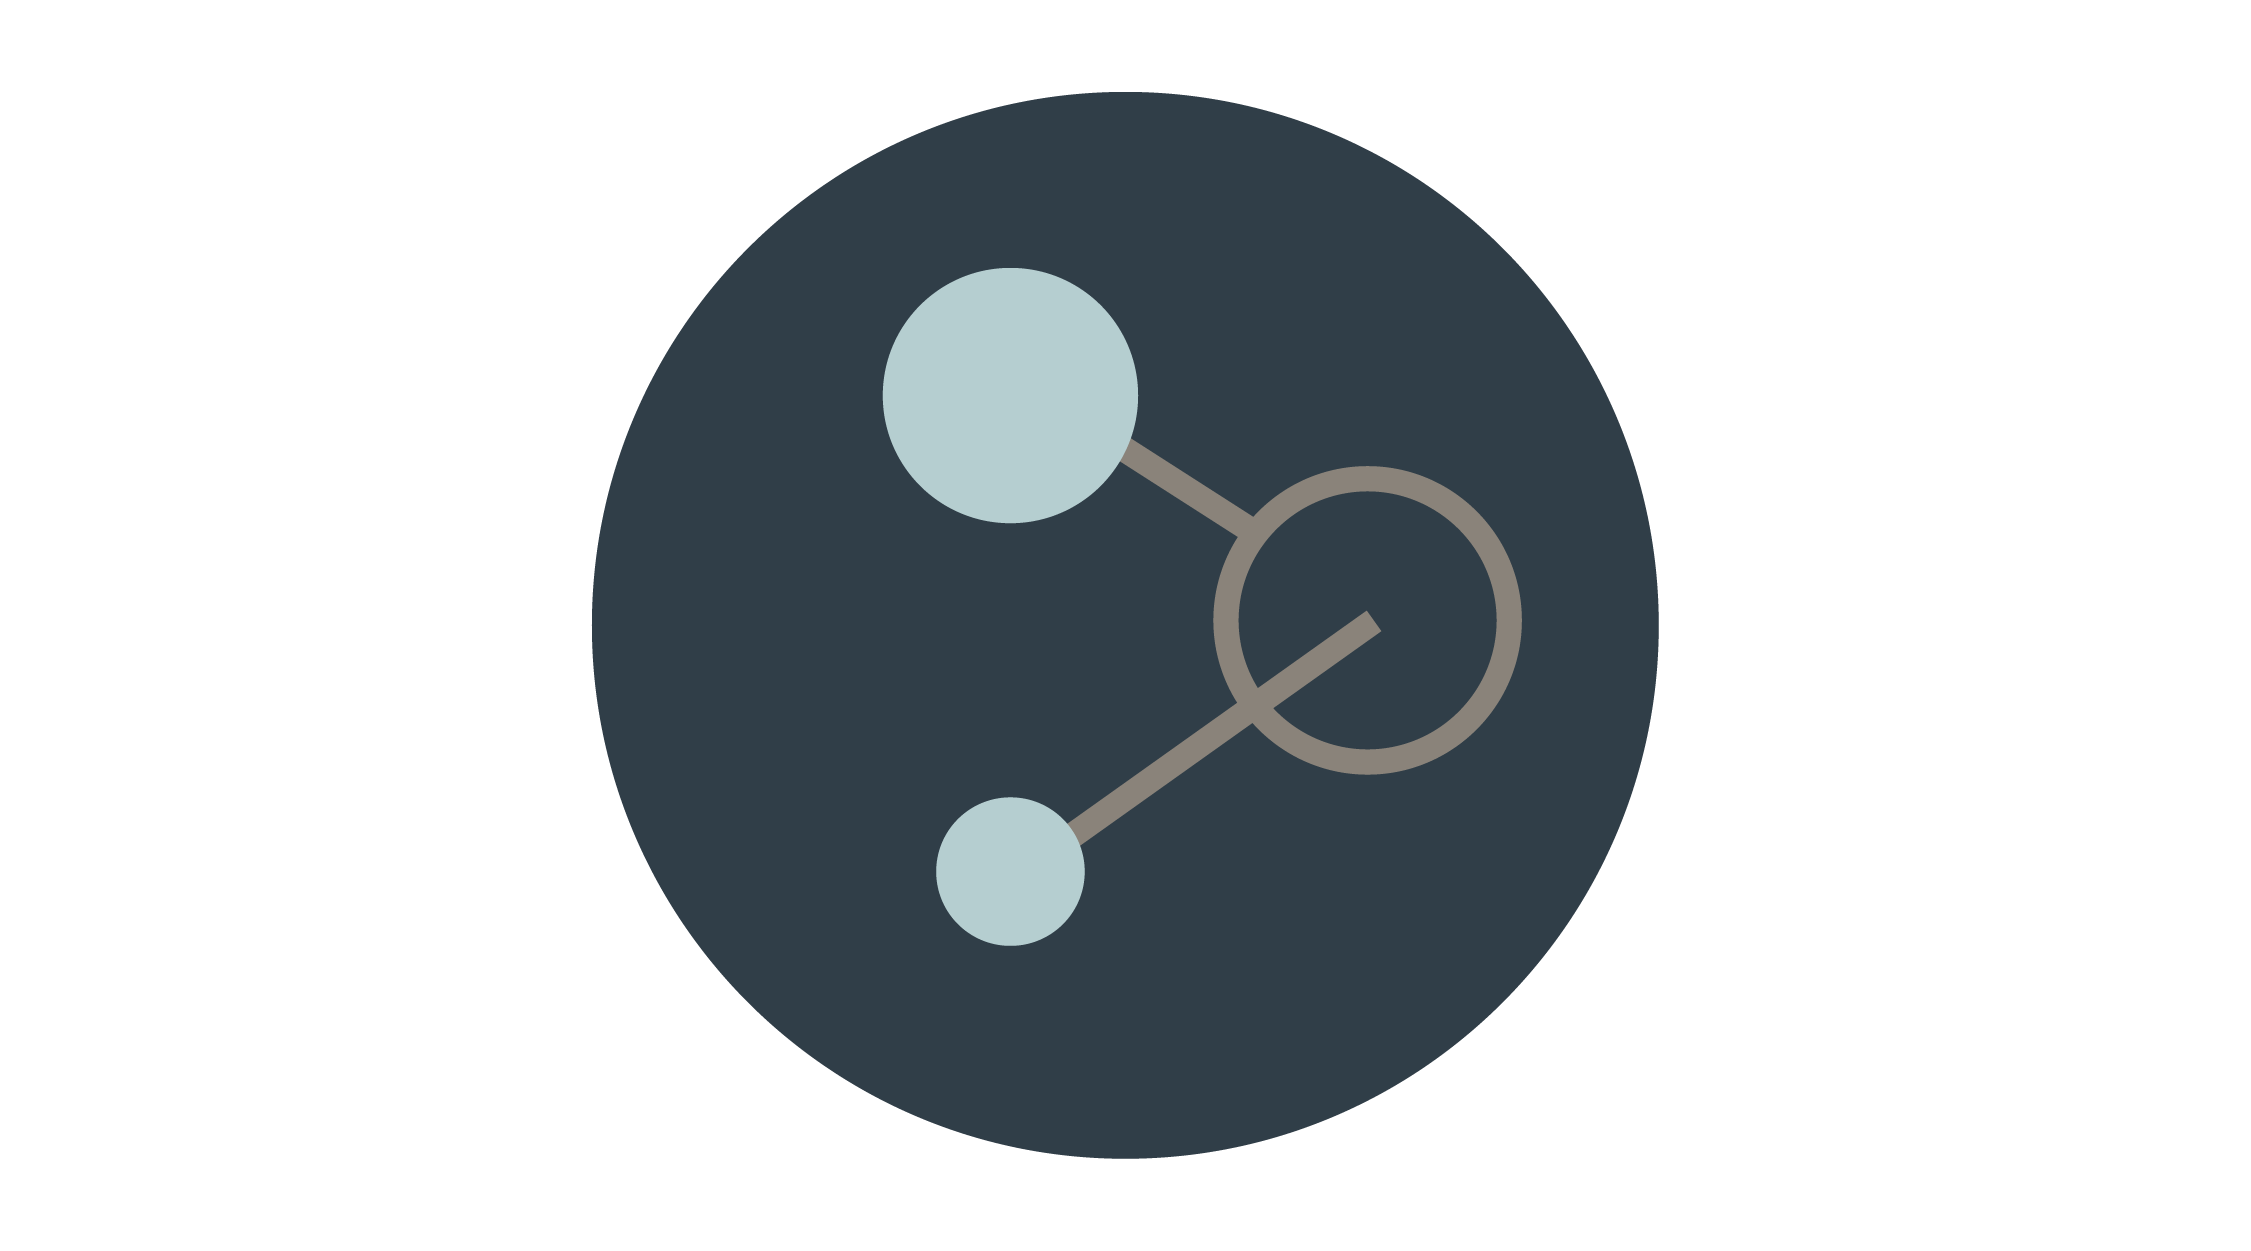 icon-lite-share.png